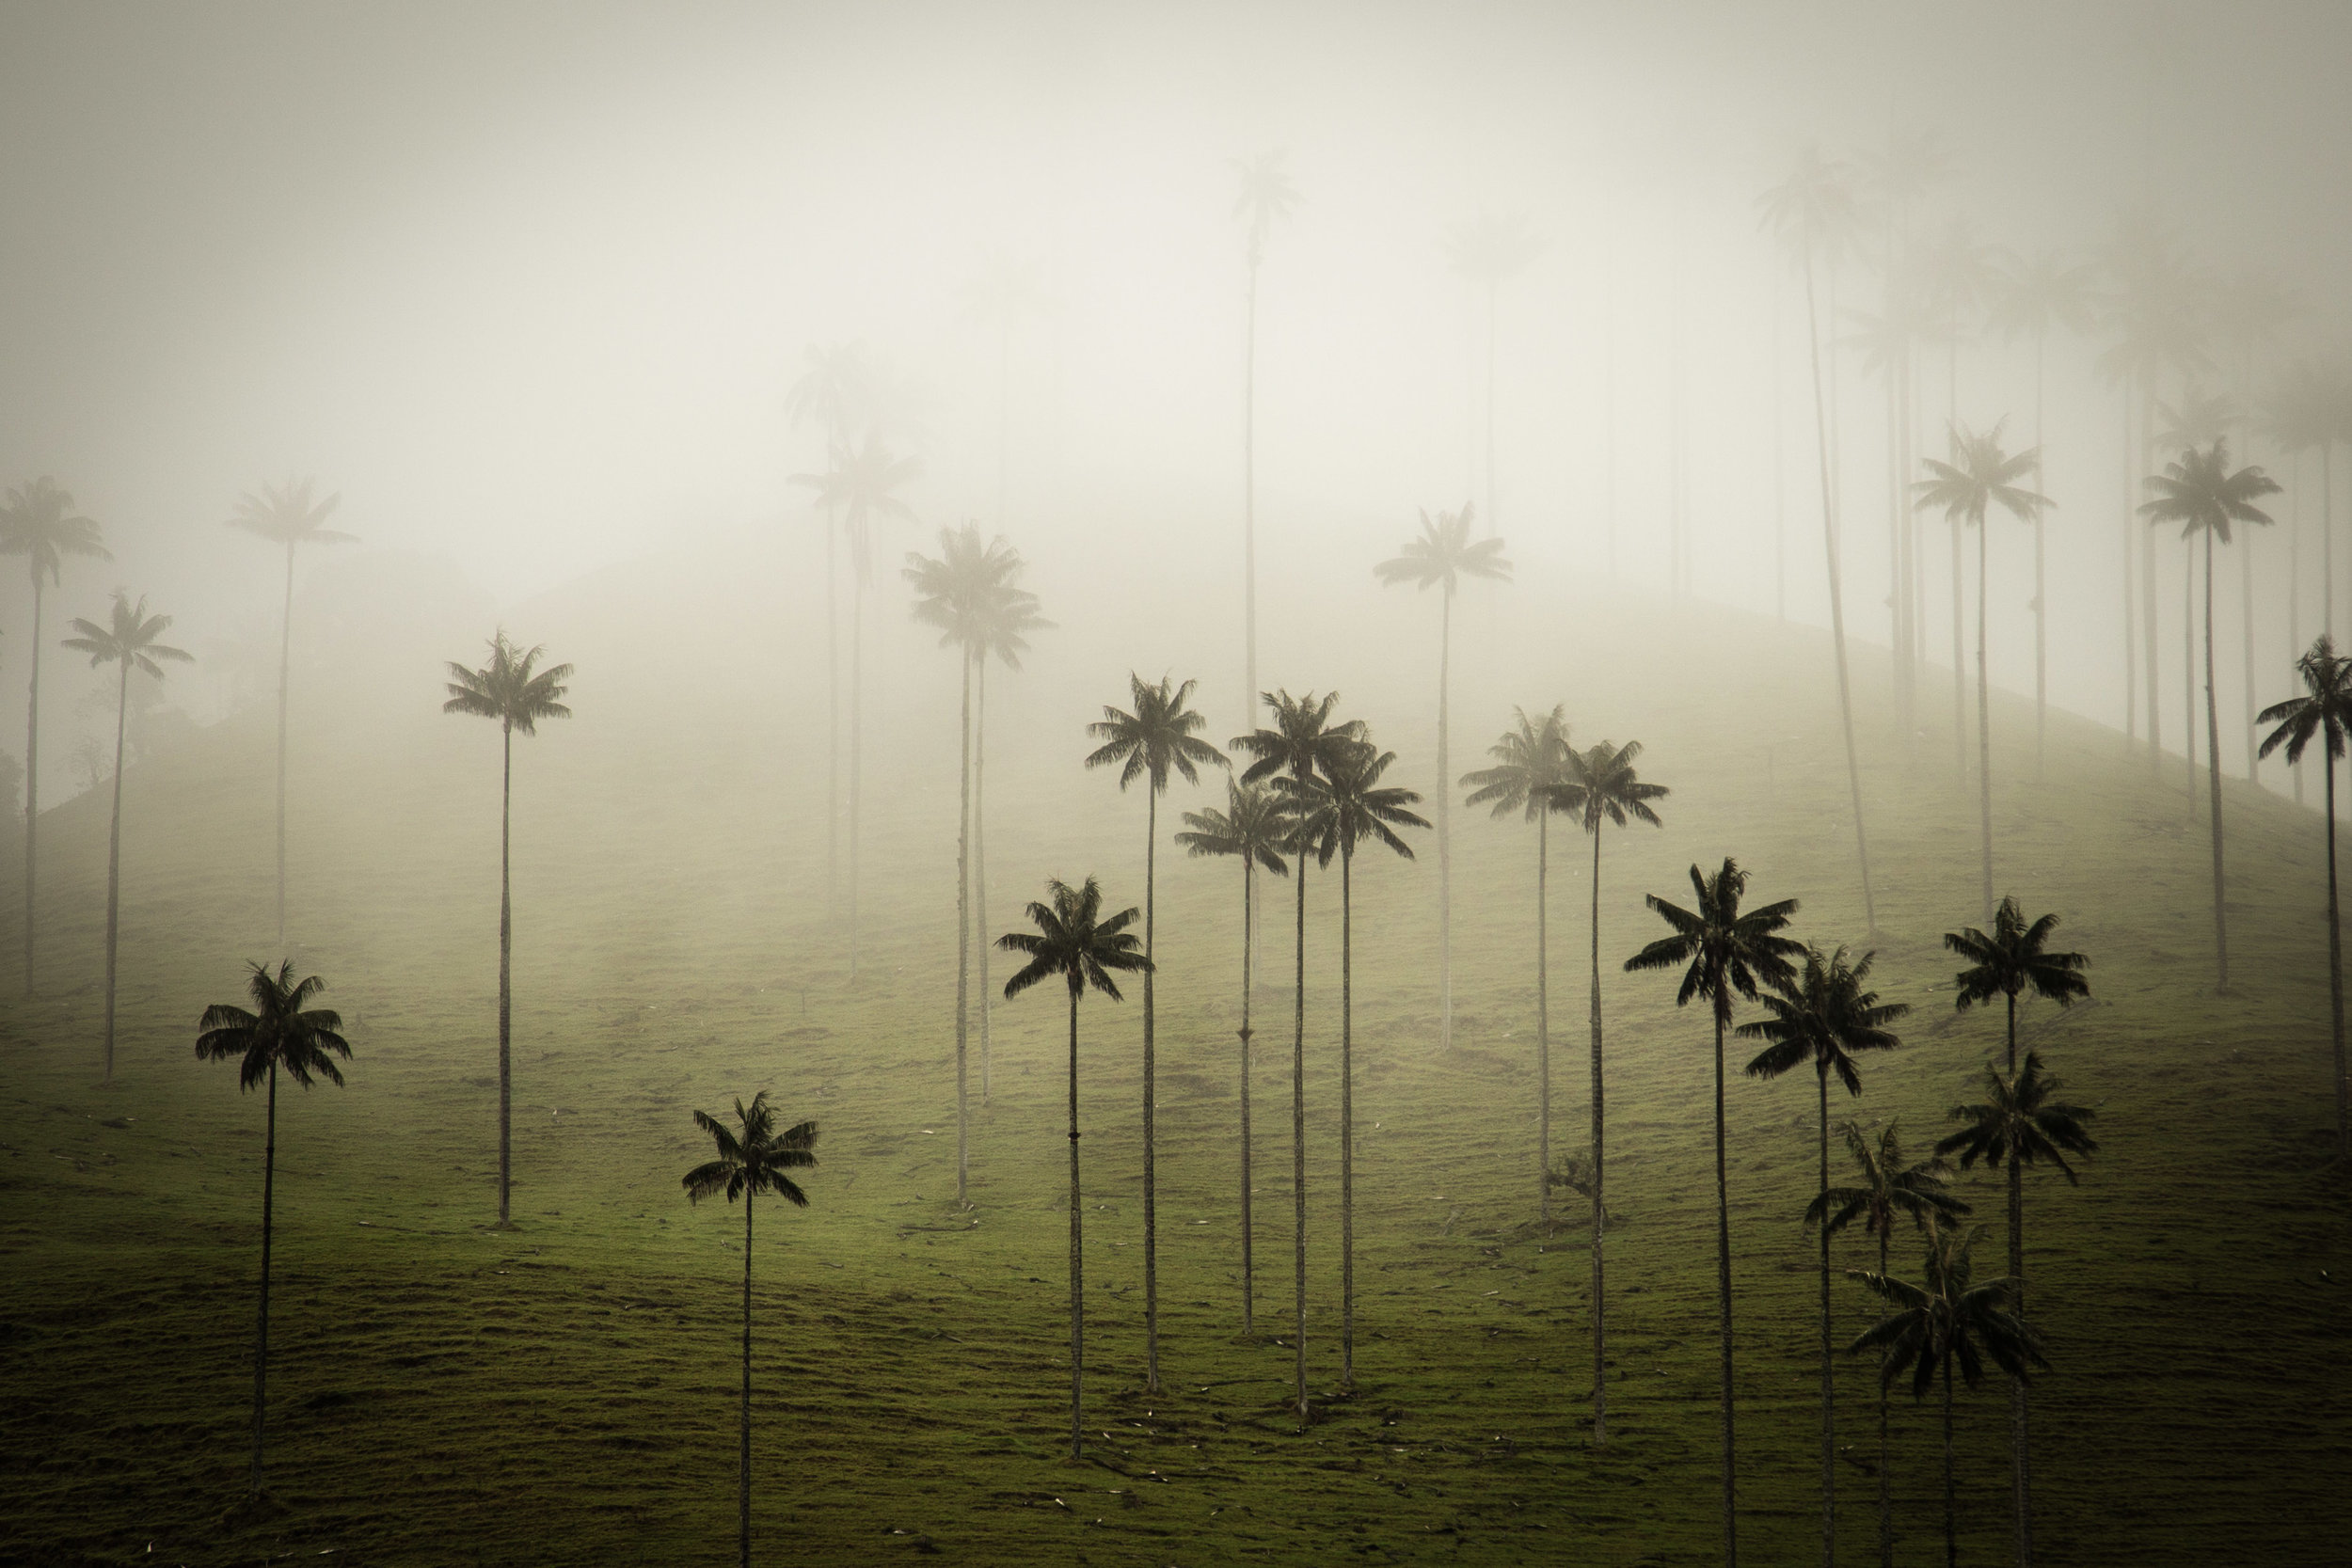 Wax Palms & Pastures | Colombia